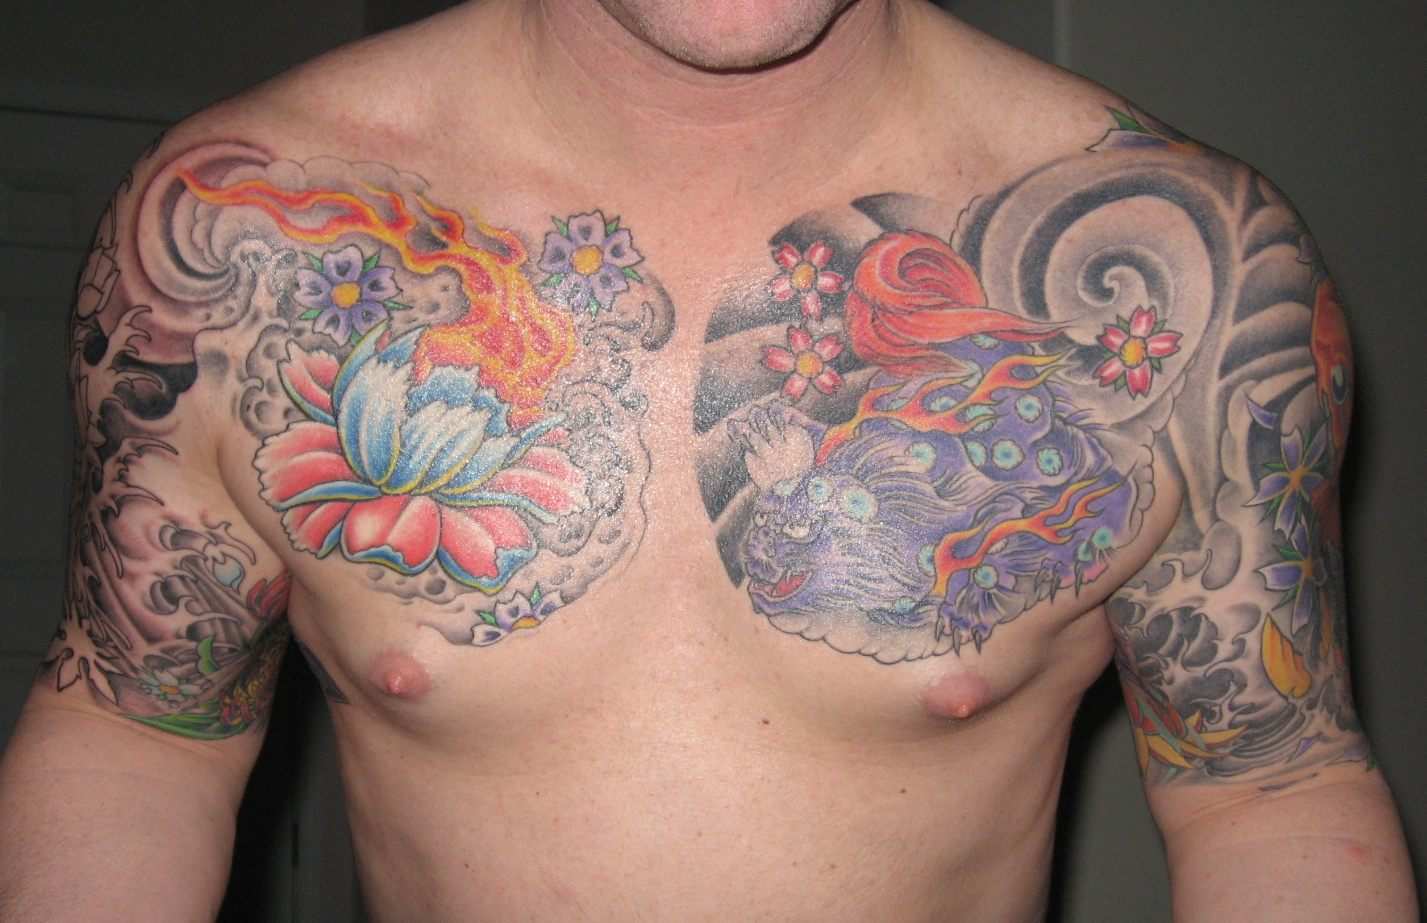 Information & Technology: Chest Tattoos